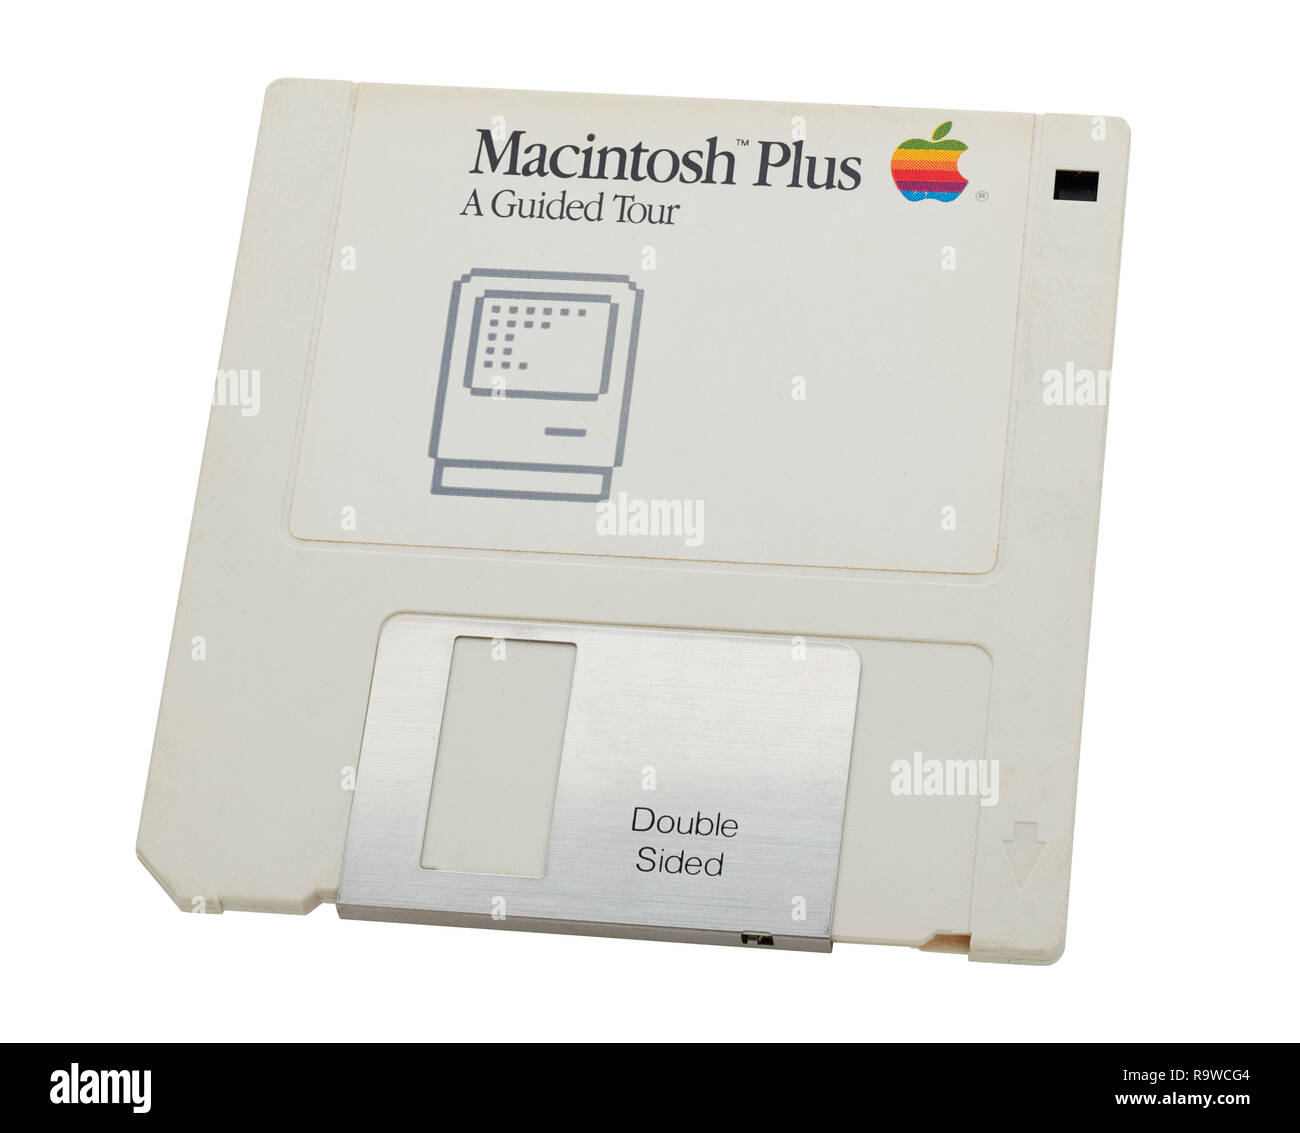 Original Apple Macintosh Plus floppy disk guided tour that came with SE30 computer in the early 1990s - Stock Image